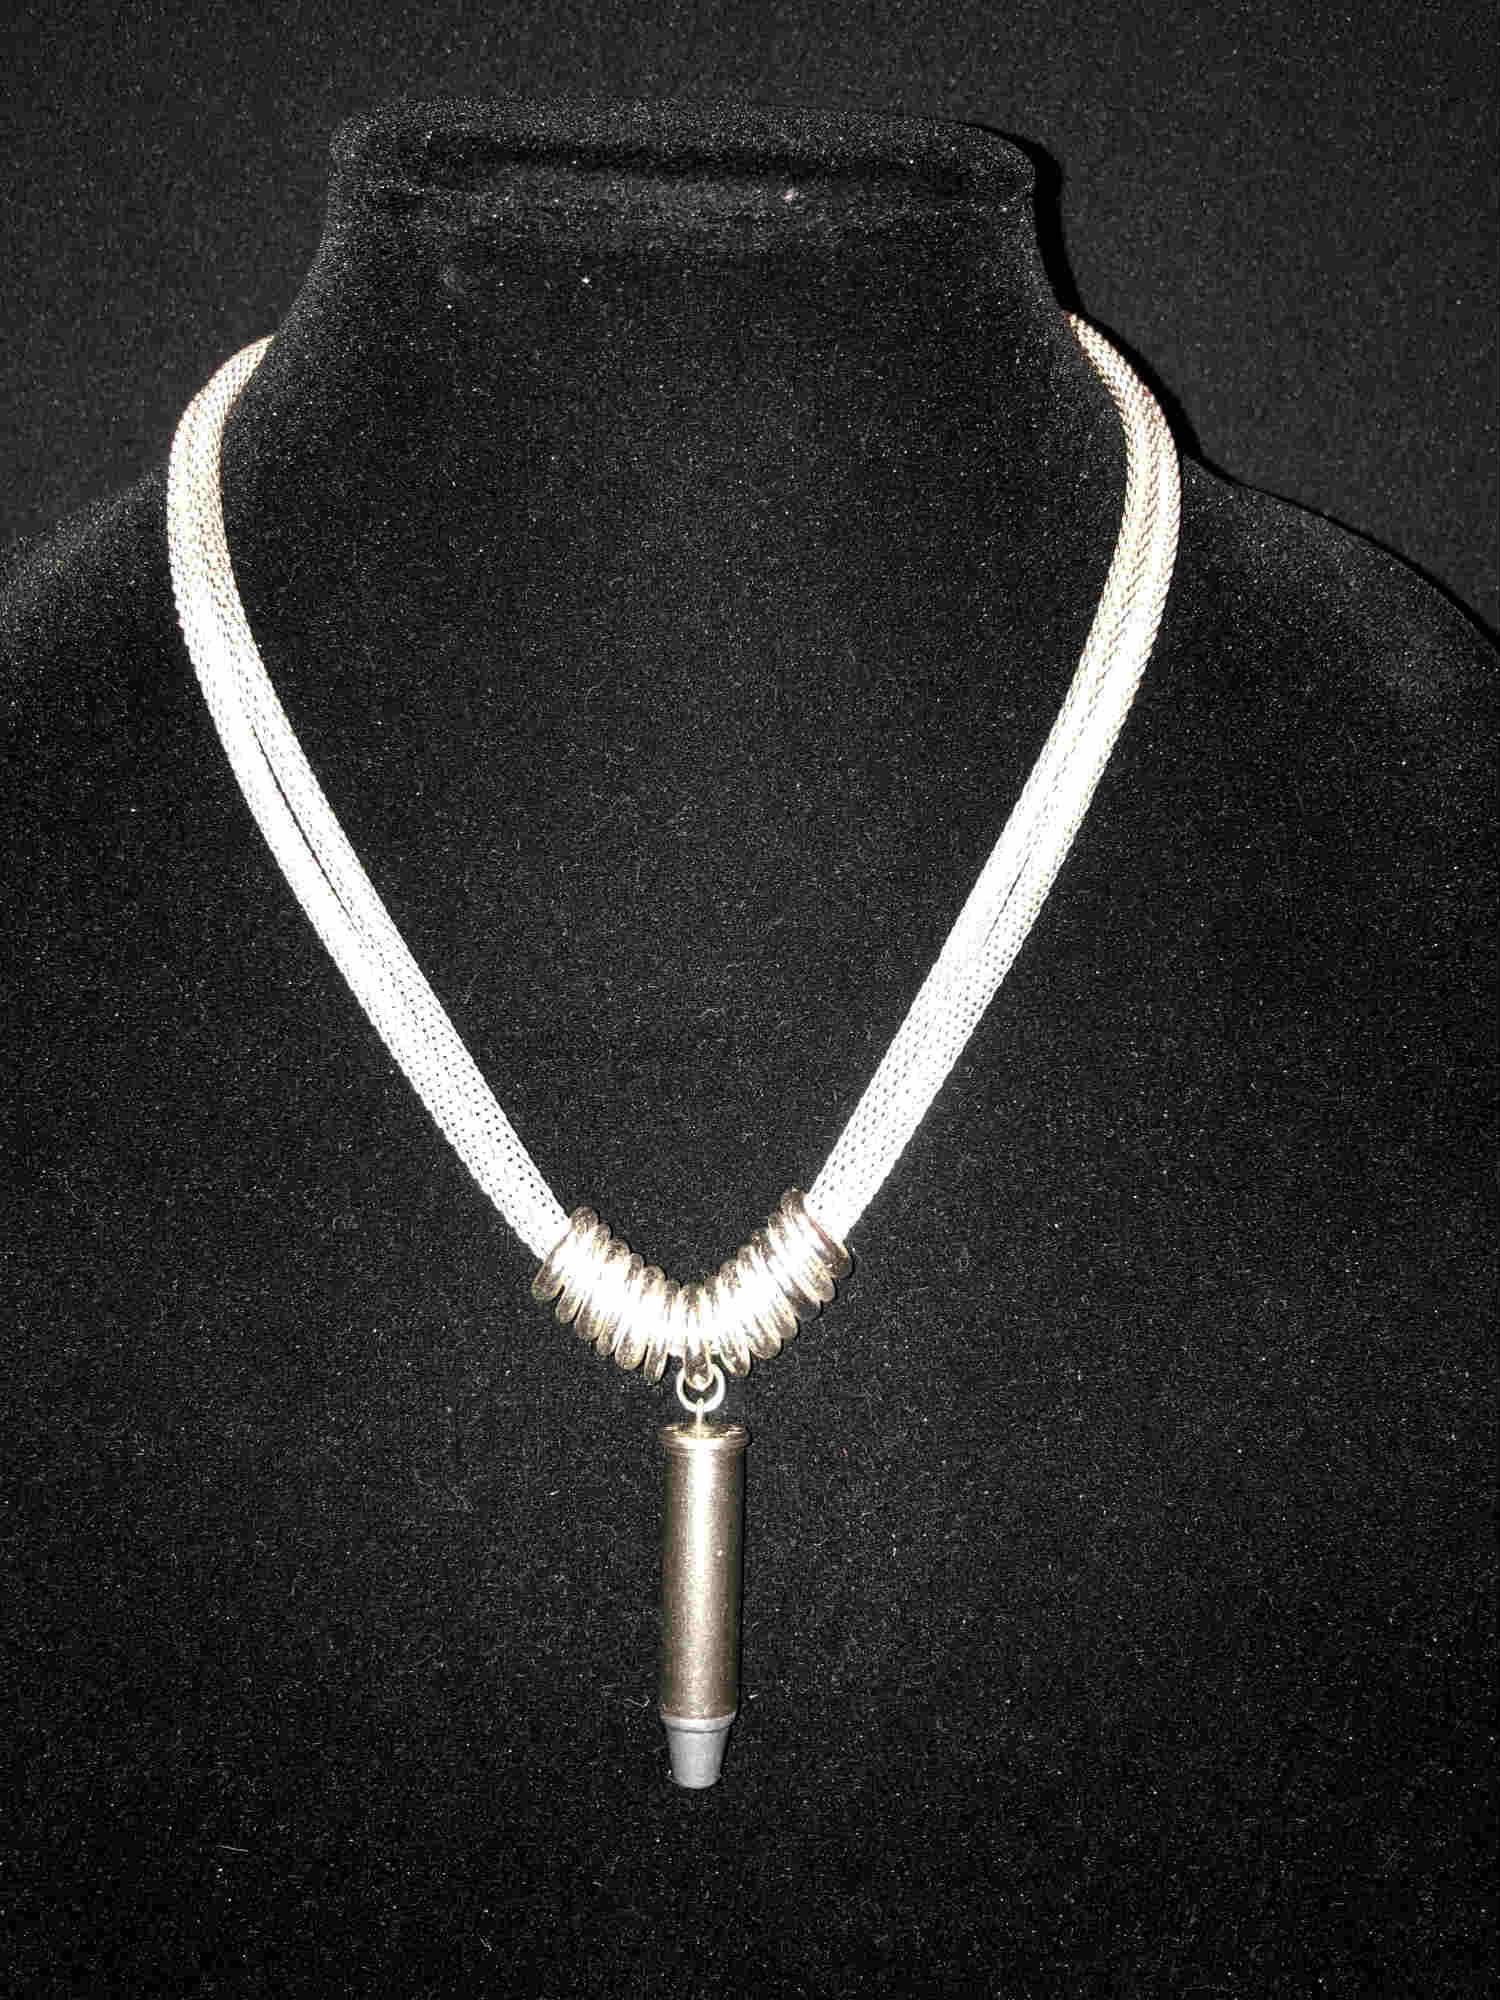 Circle 13 Two mesh chains adorned with 13 stainless rings and .357 caliber nickle bullet. 18 inch adjustable length.